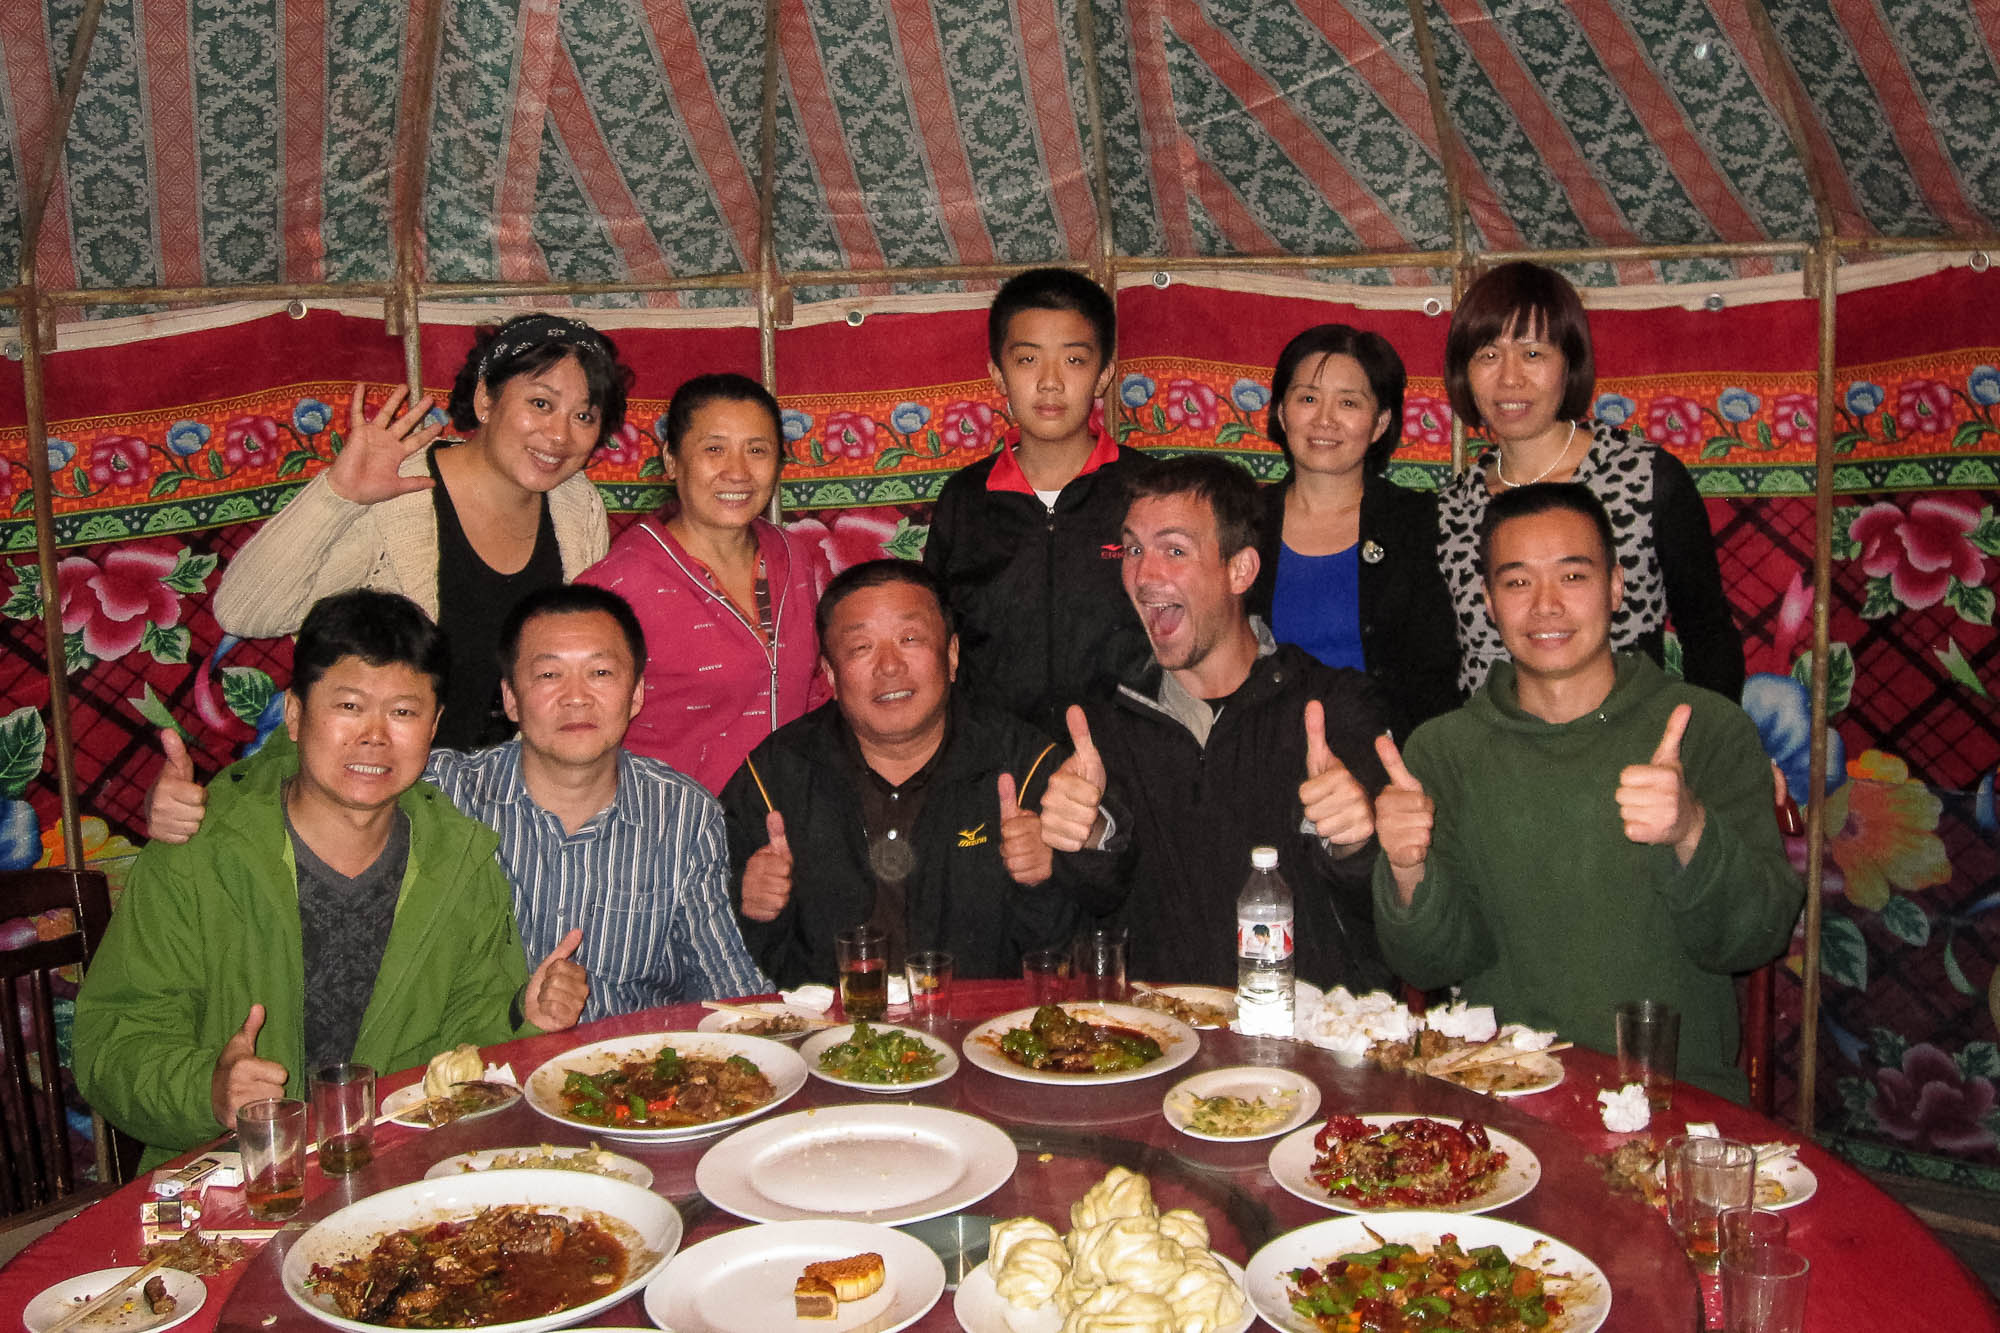 Some of the good people of Kuytun invited me to dinner